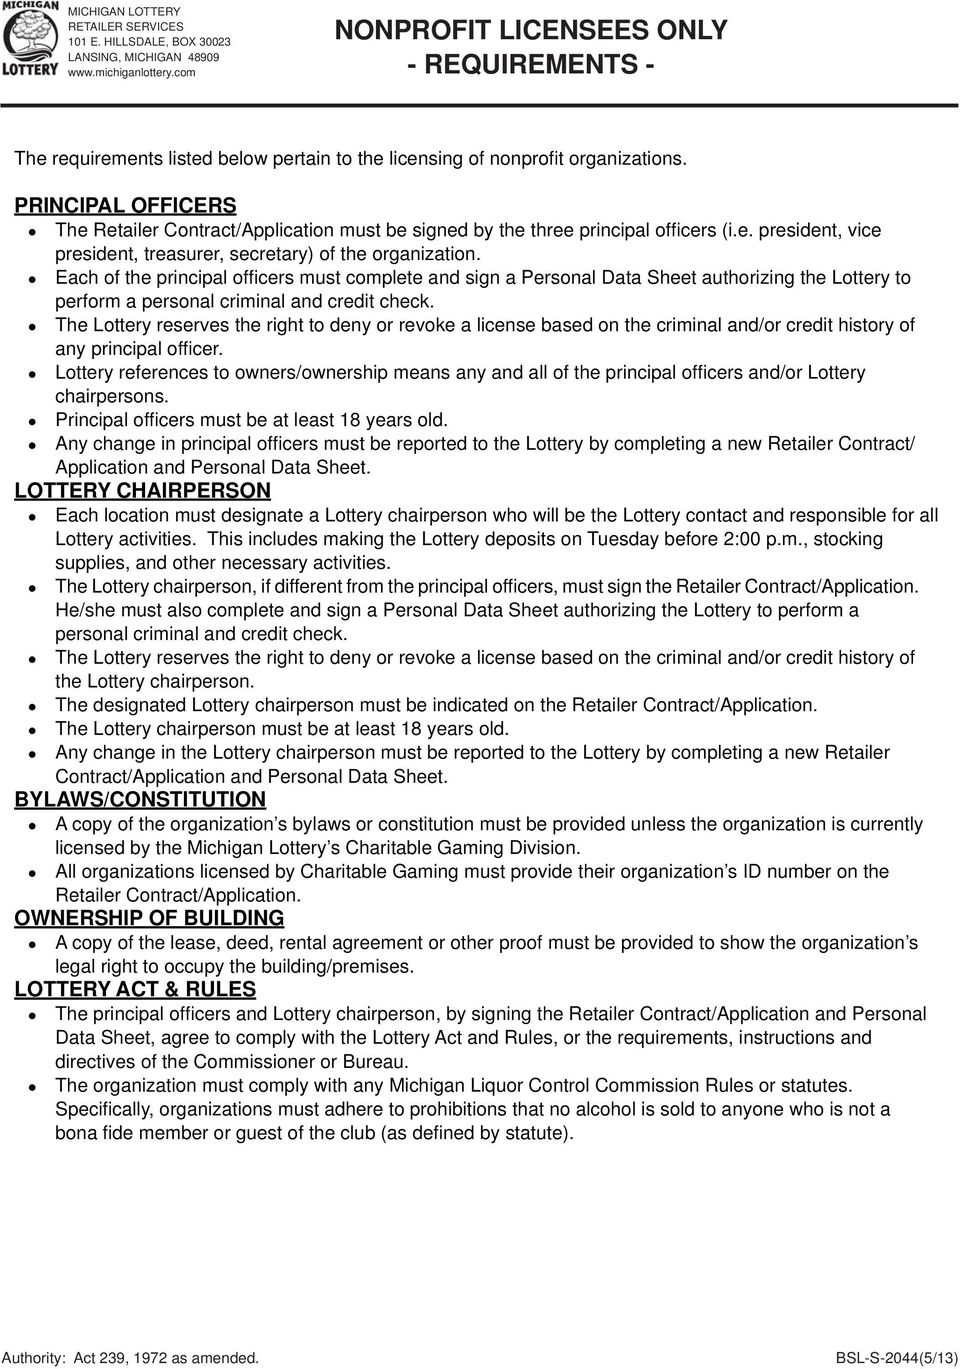 PRINCIPAL OFFICERS The Retailer Contract/Application must be signed by the three principal offi cers (i.e. president, vice president, treasurer, secretary) of the organization.